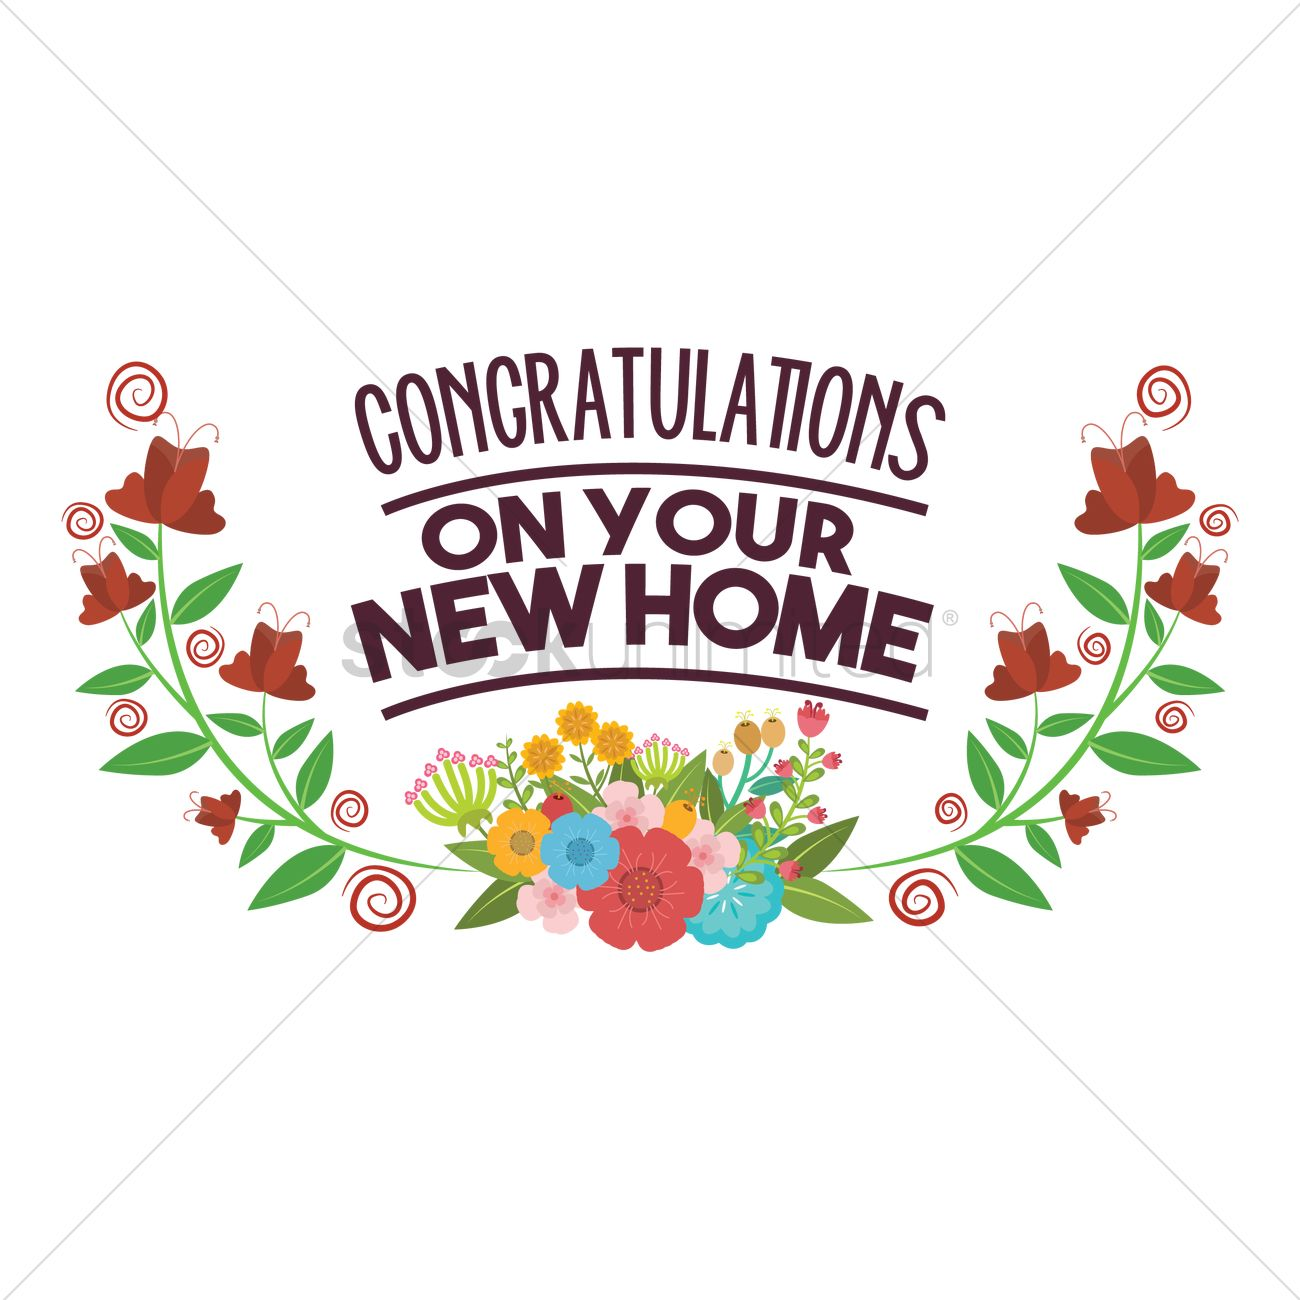 Congratulations on your new home vector image 1797295 for Ome images